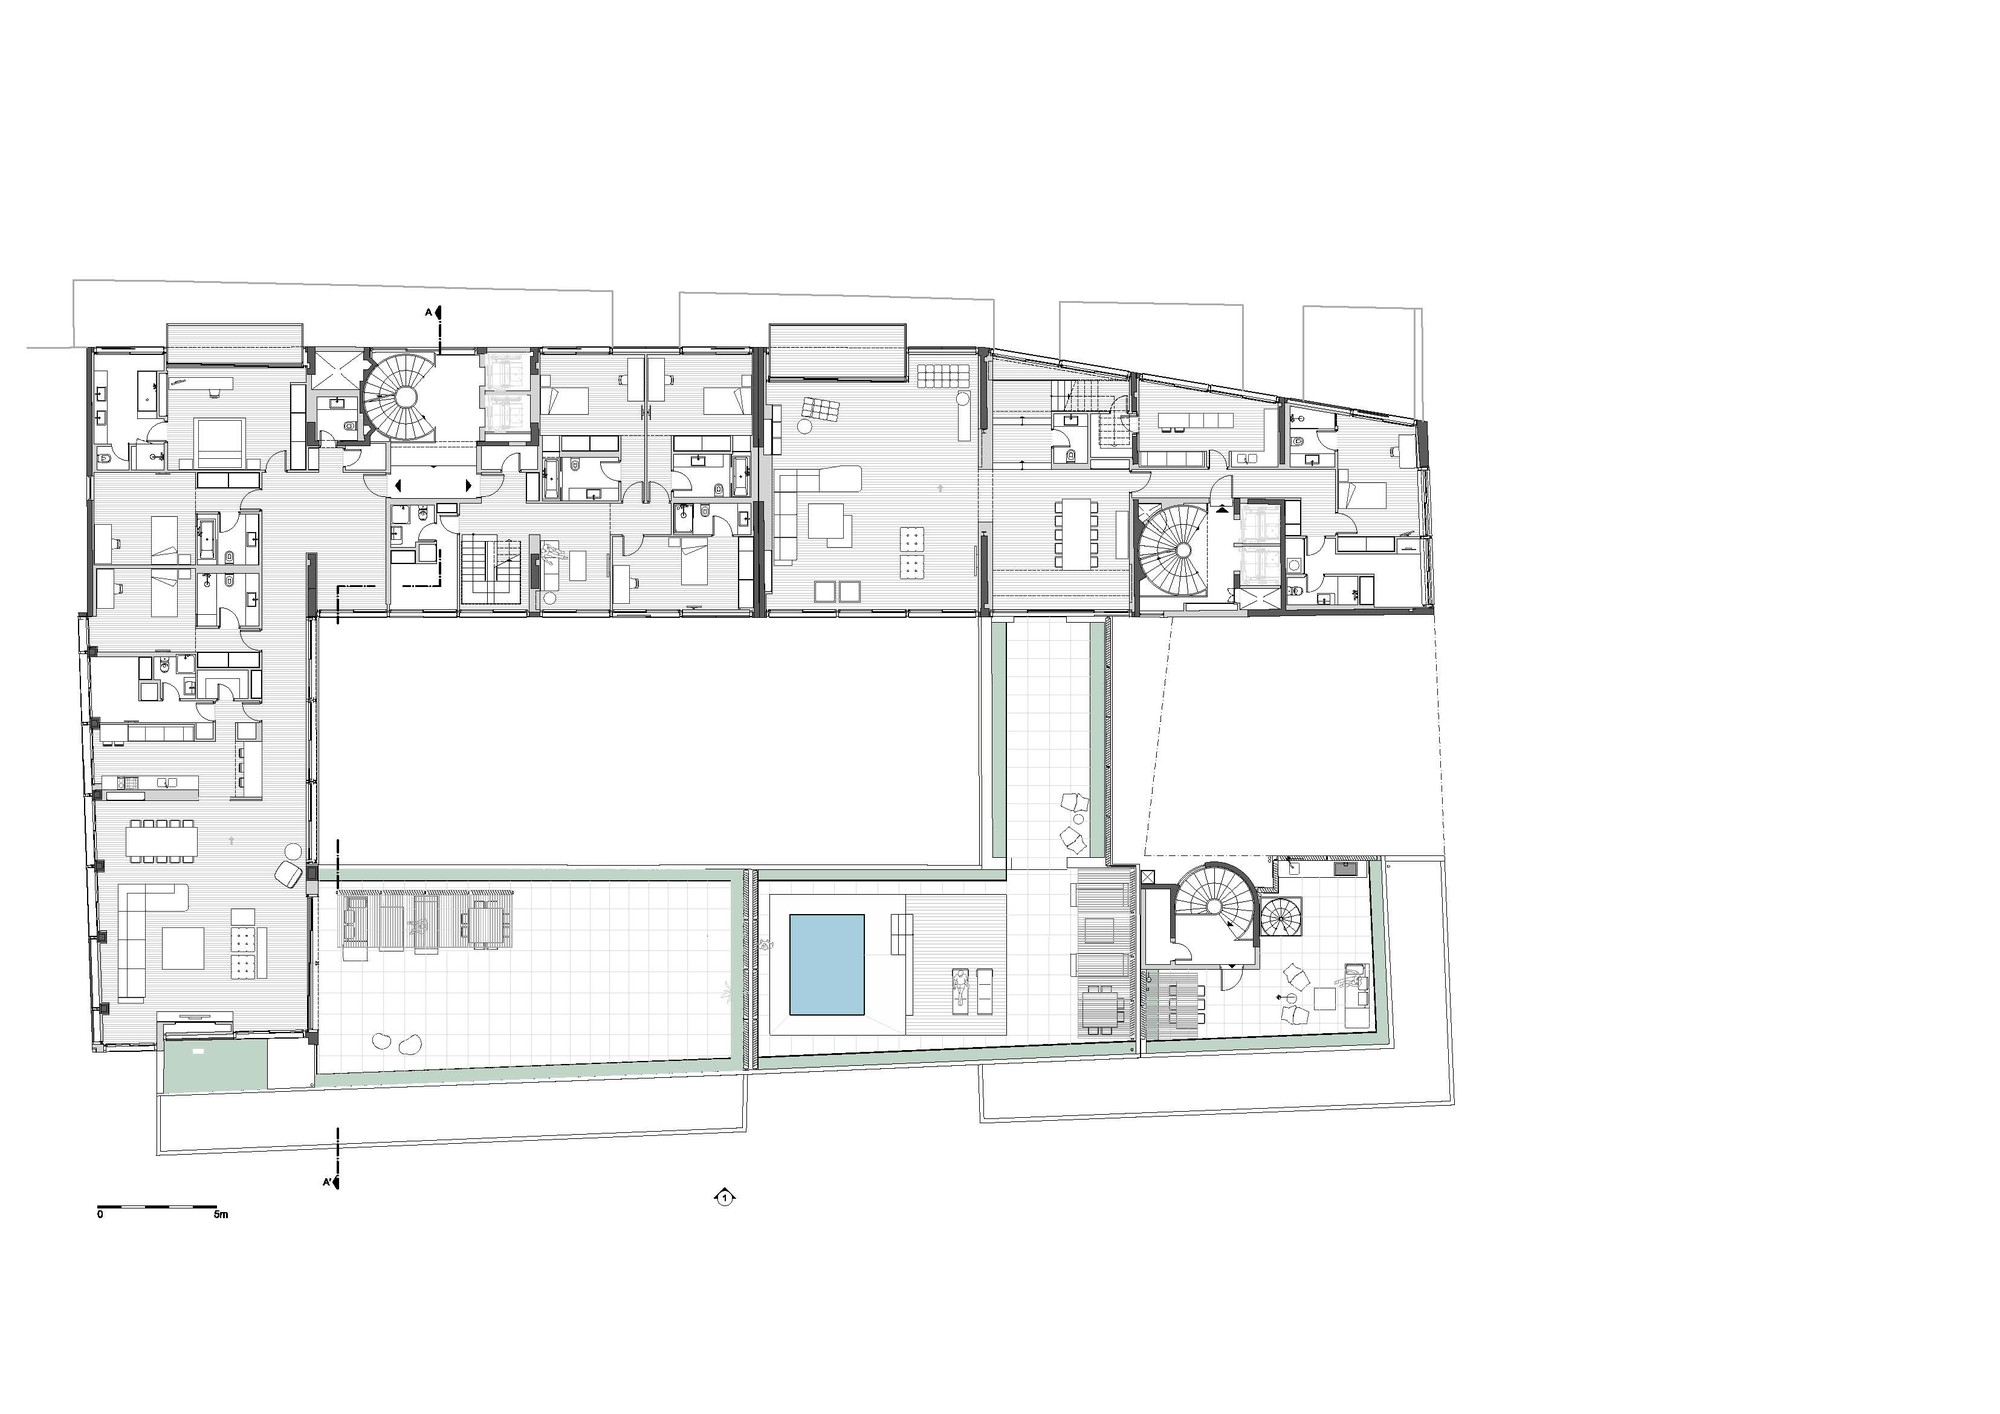 Gallery Of Conversion Of Doxiadis Office Building-ATI To